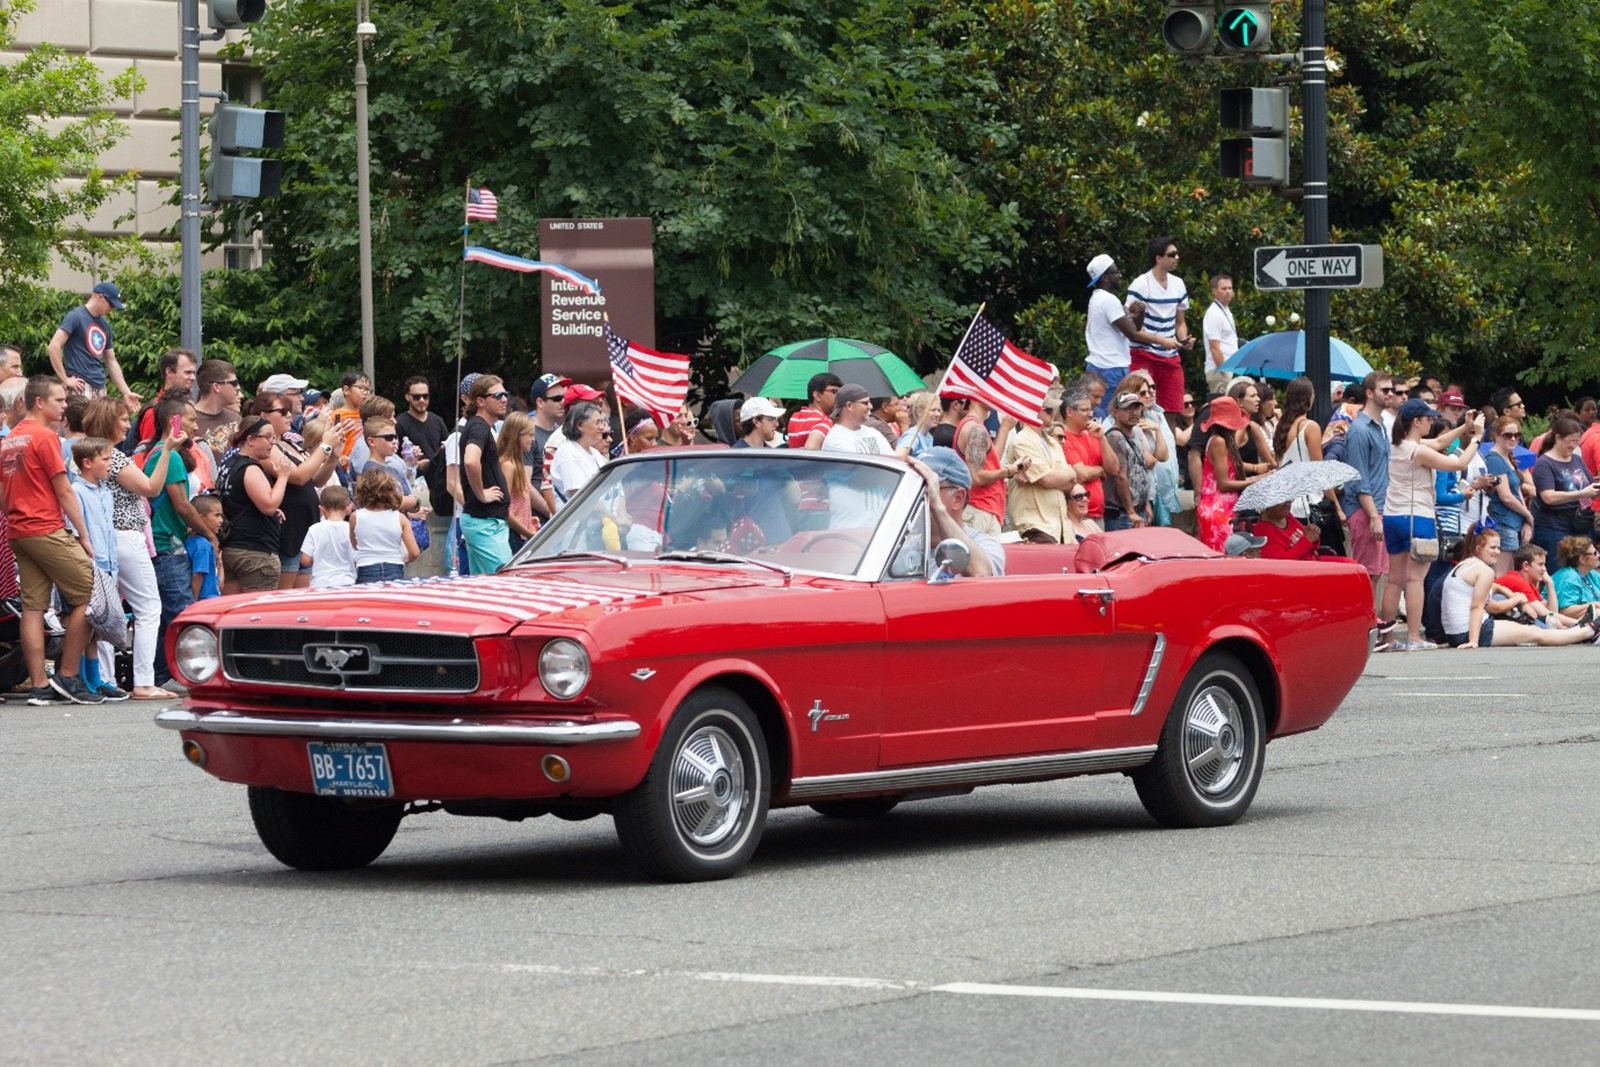 Red Ford driving on a road flanked with people and American flags